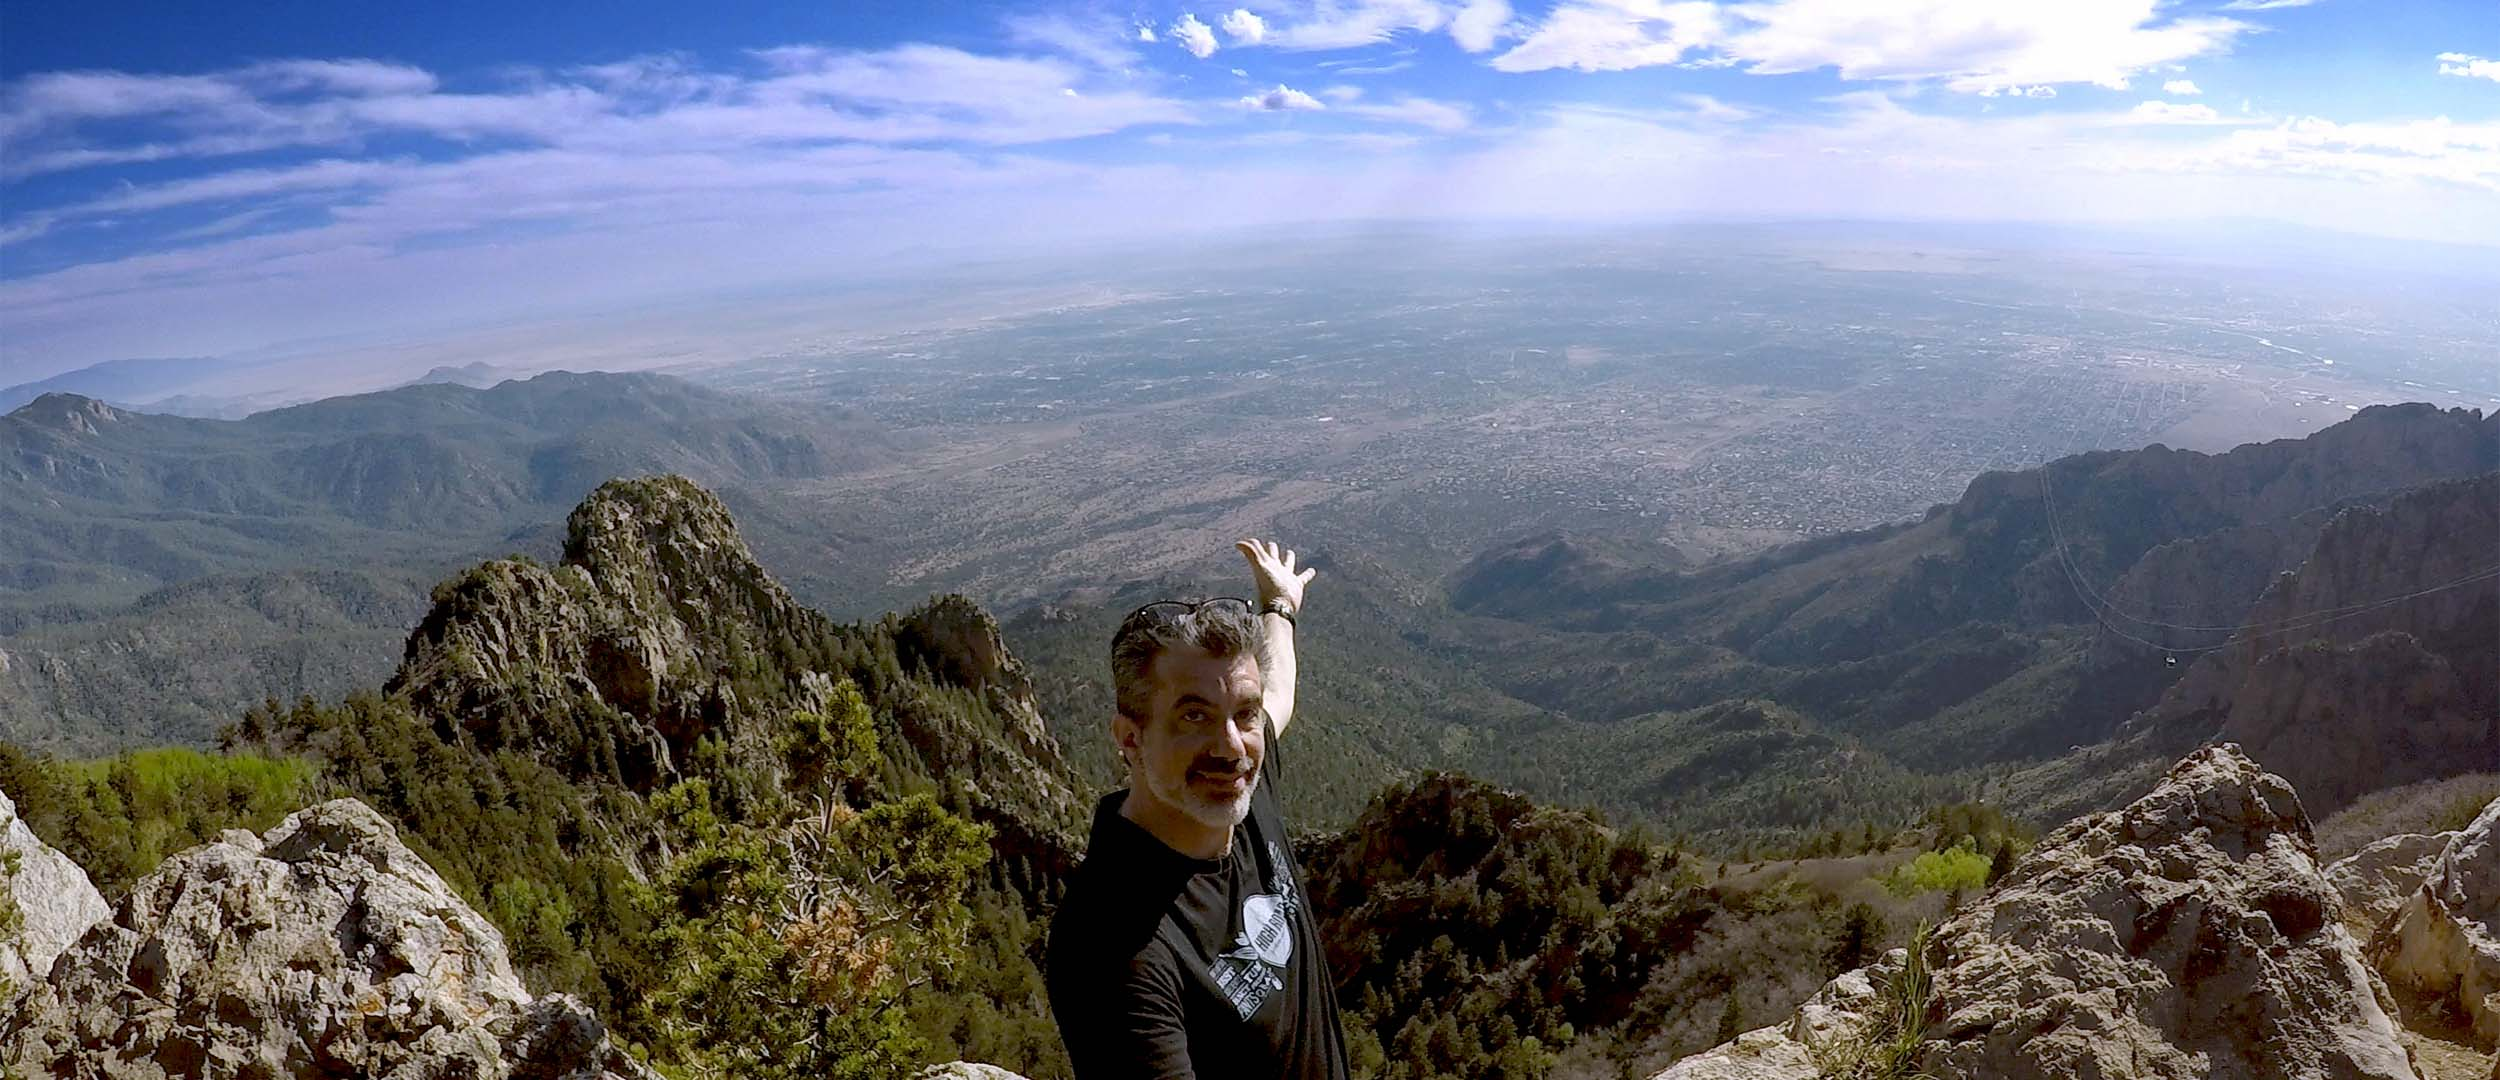 Enjoying life and career at 10,000 feet on Sandia Peak, Albuquerque